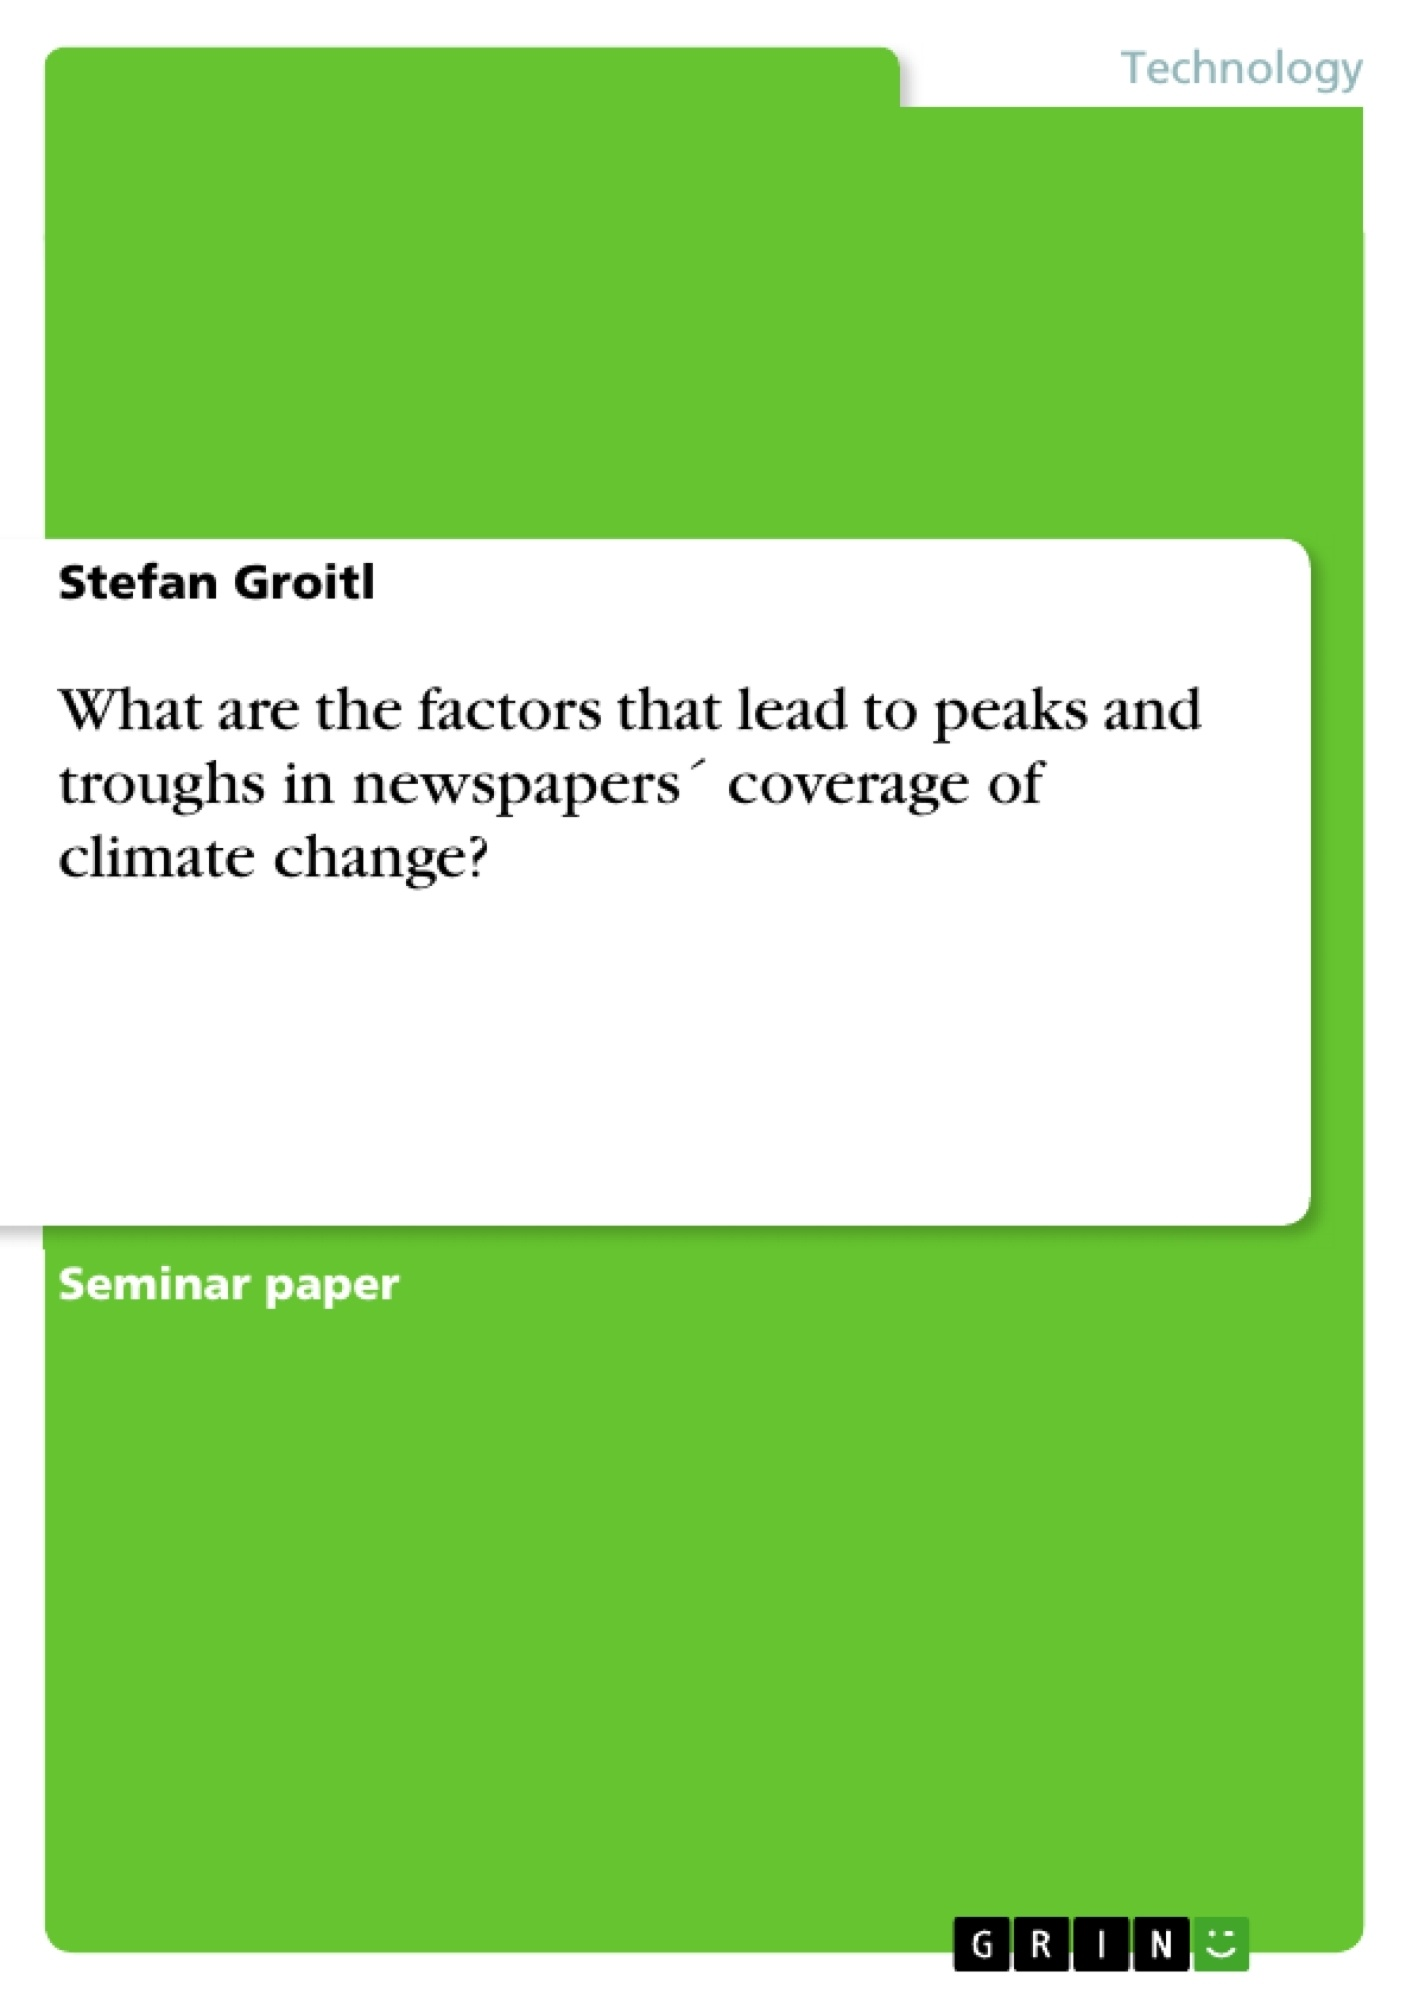 Title: What are the factors that lead to peaks and troughs in newspapers´ coverage of climate change?